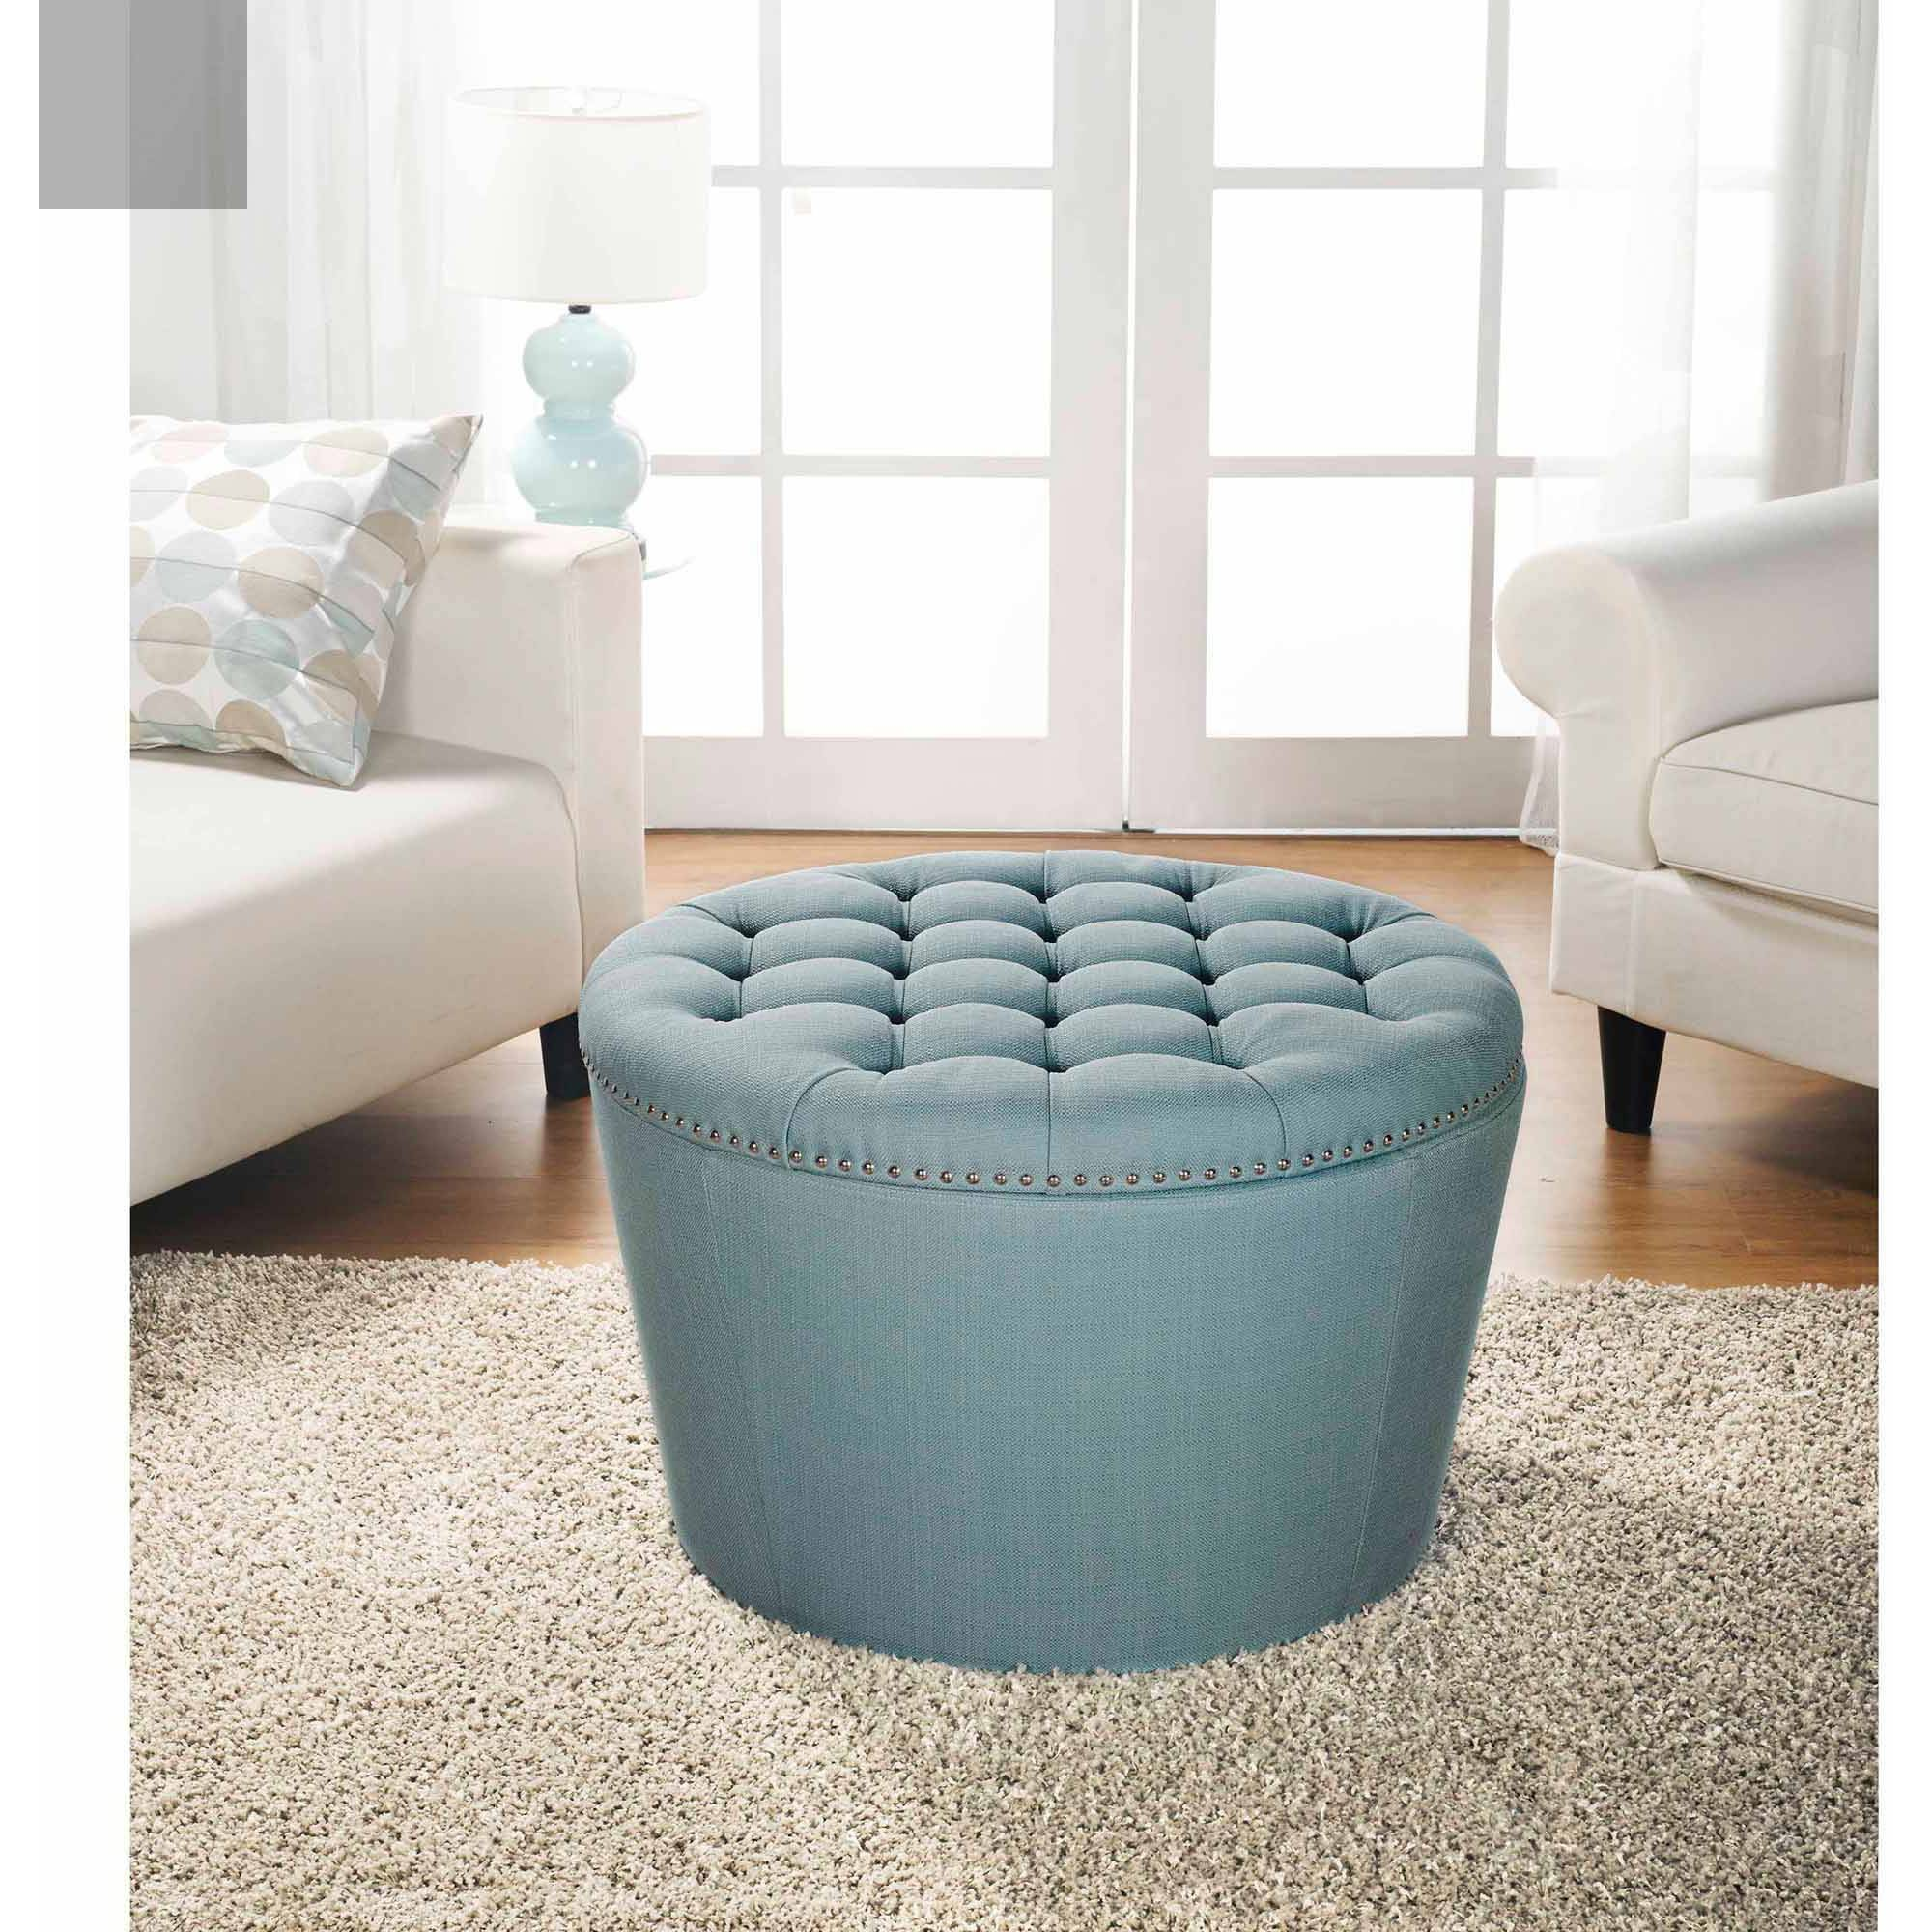 High Quality Better Homes And Gardens Round Tufted Storage Ottoman With Nailheads,  Multiple Finishes   Walmart.com